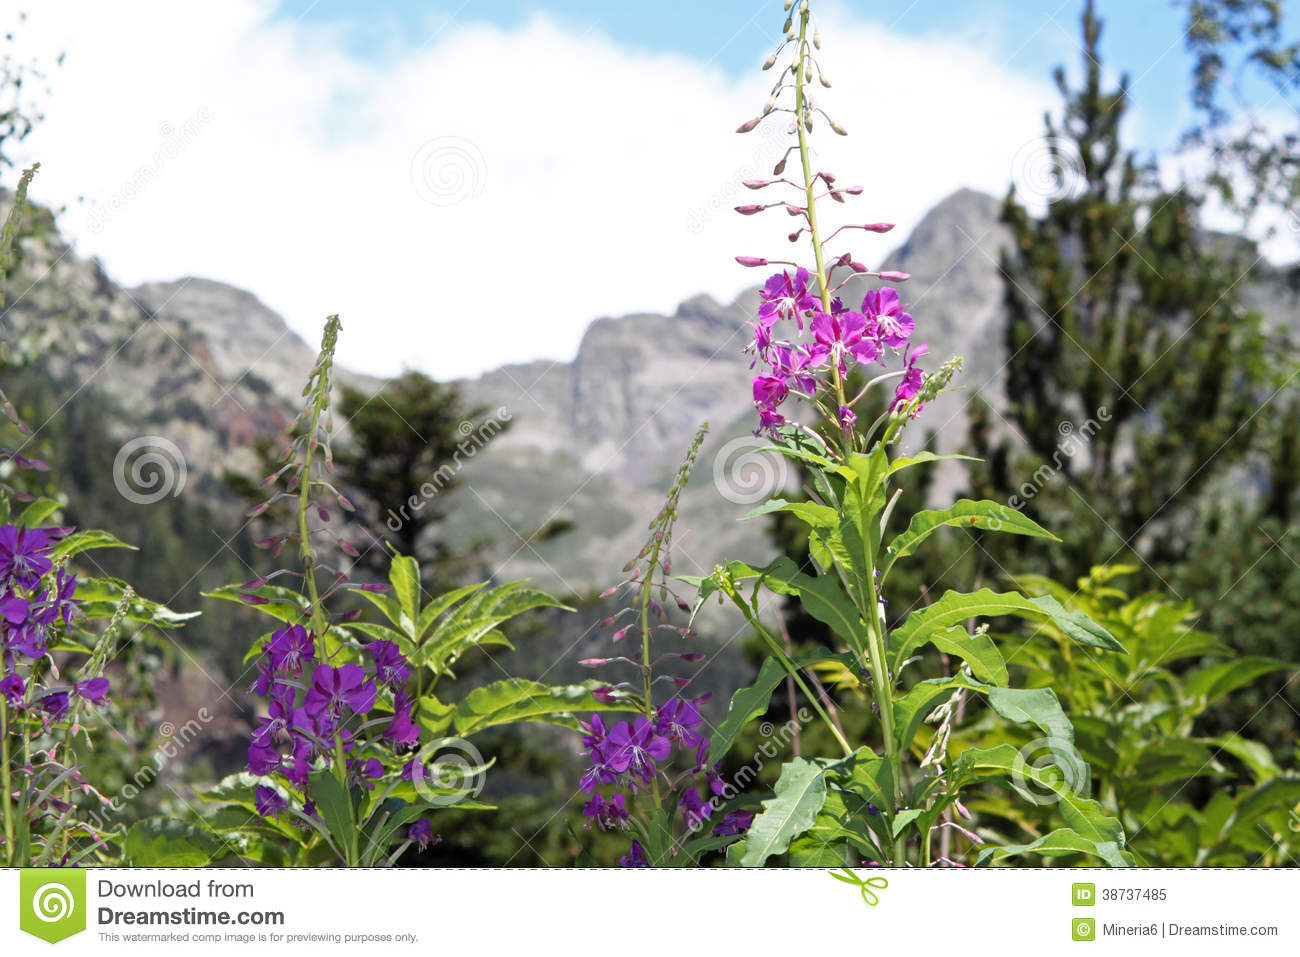 Flowers In Spanish Pyrenees Royalty Free Stock Image